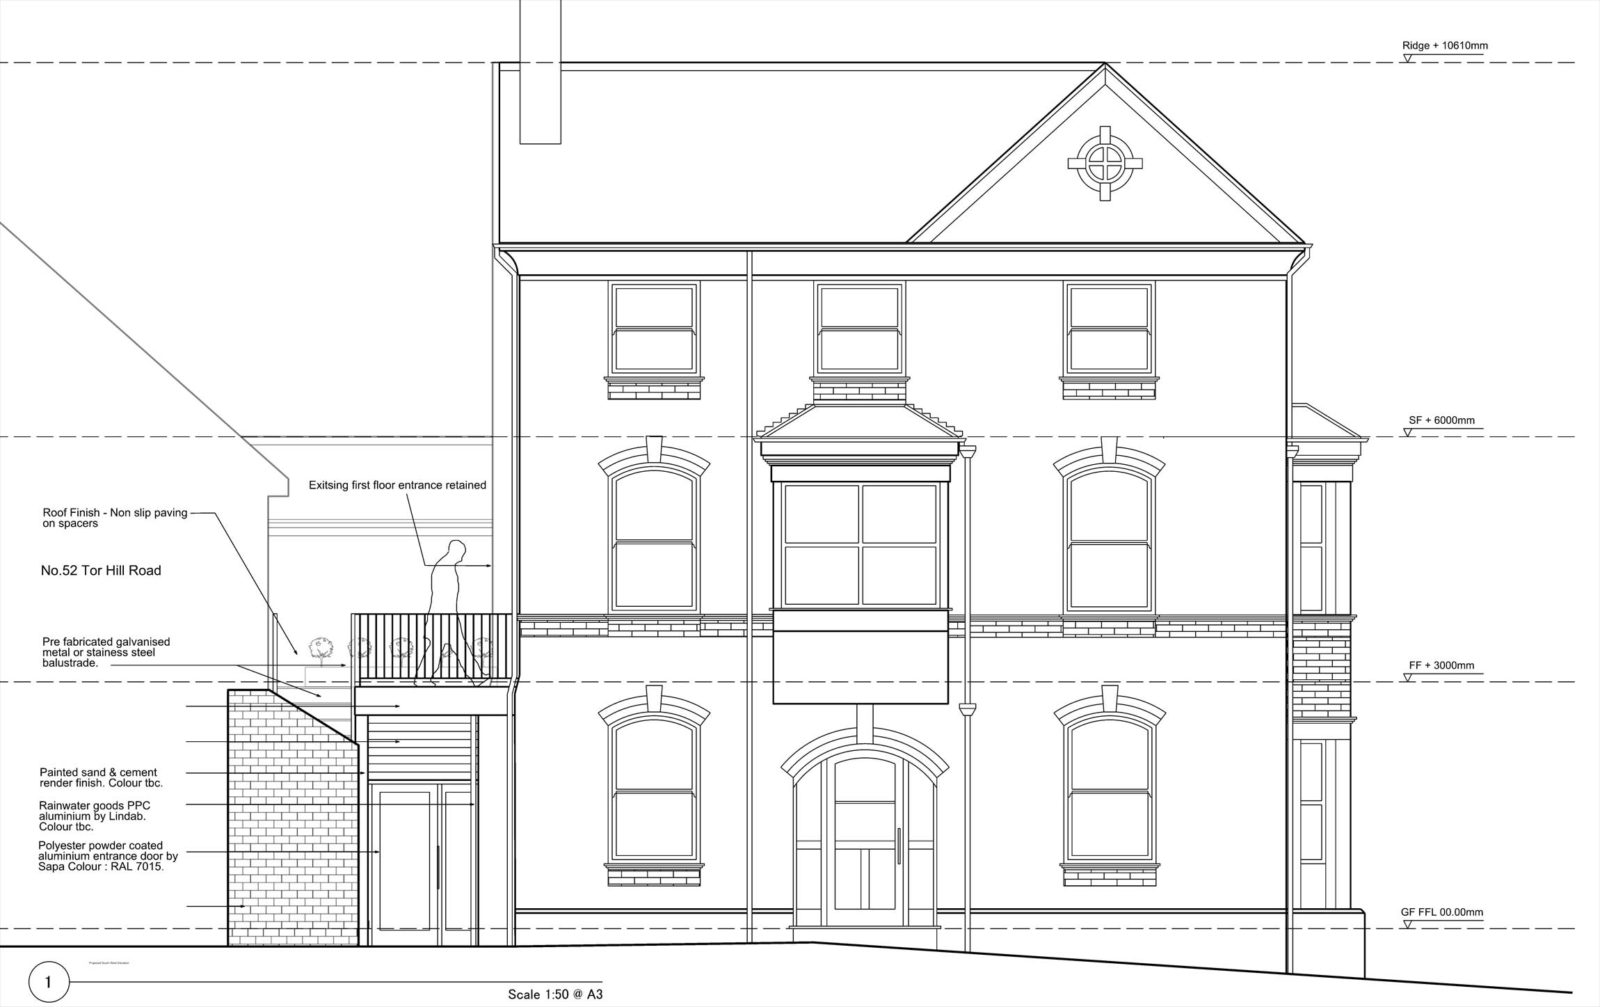 RSA commissioned to design new Quaker building Torquay – Rud Sawers Architects, Devon